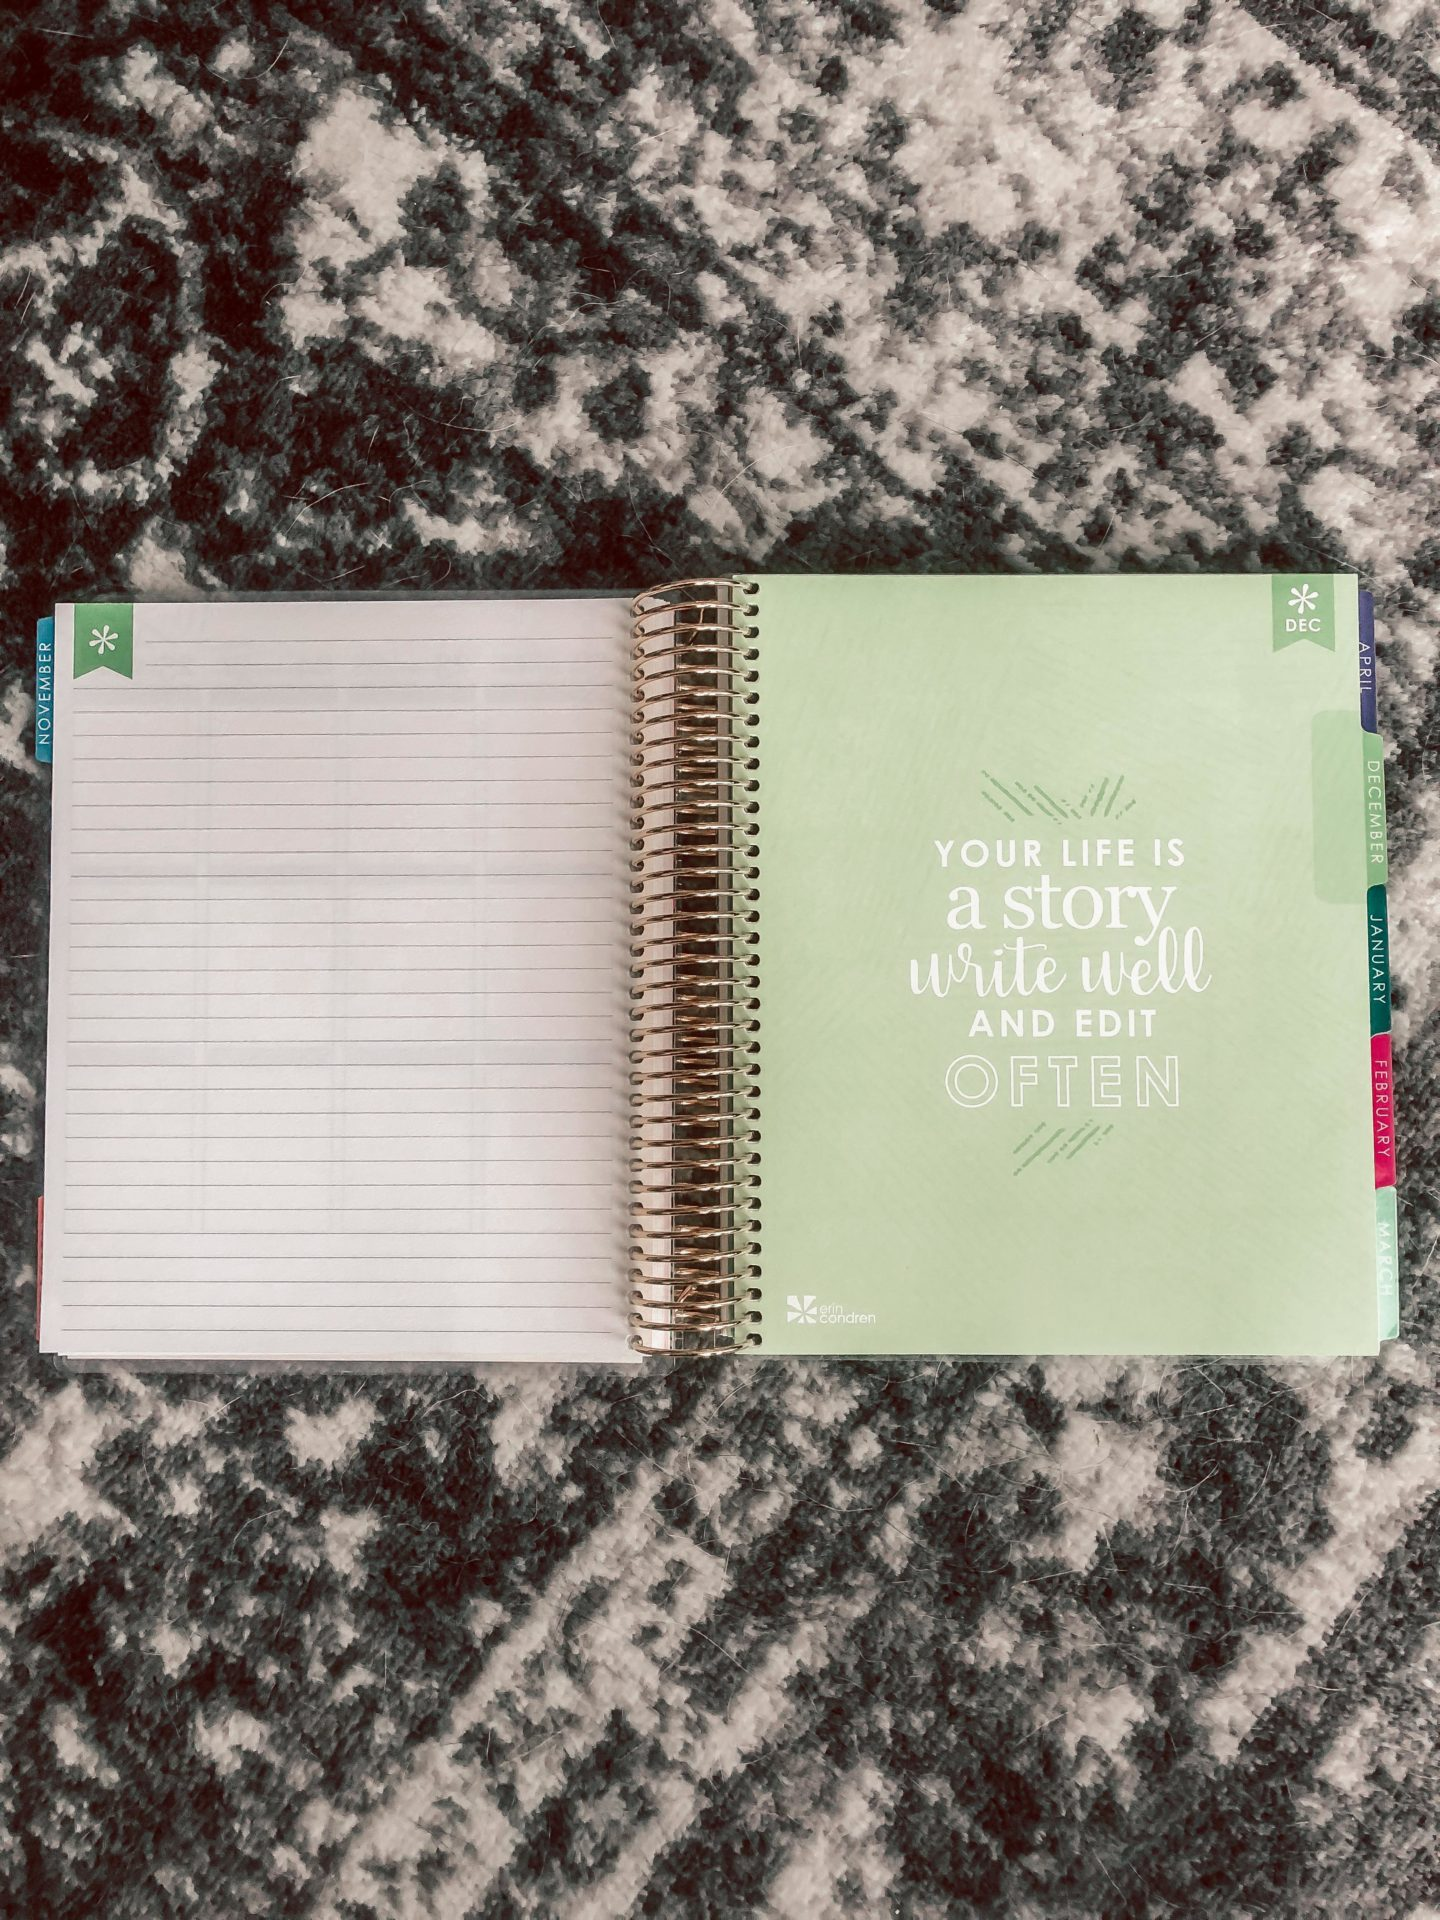 Erin Condren Planner Review - Running in Heels